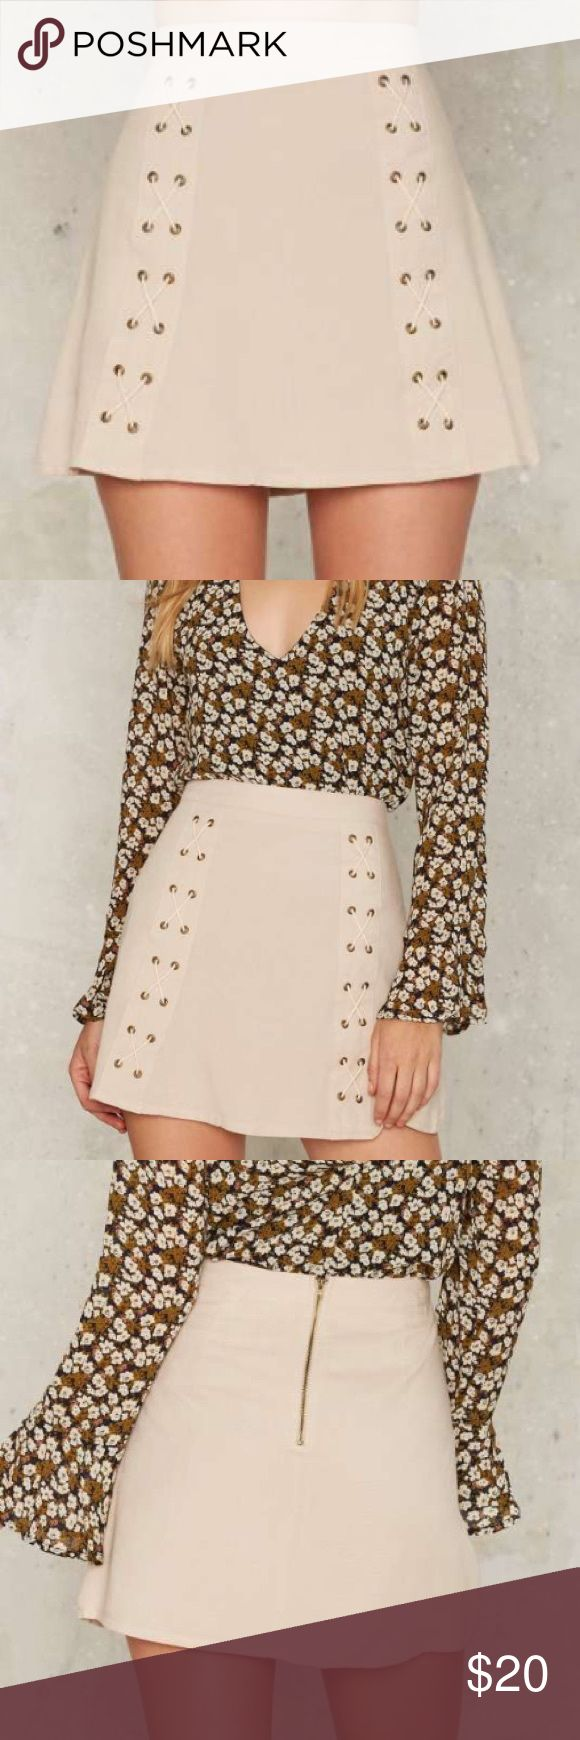 Double Cross Me Lace-Up Skirt The Double Cross Skirt is beige and features a high-waisted fit, mini length, gold zip closure at back, and double lace-up detailing at front. Fully lined. Sadie & Sage Skirts Mini